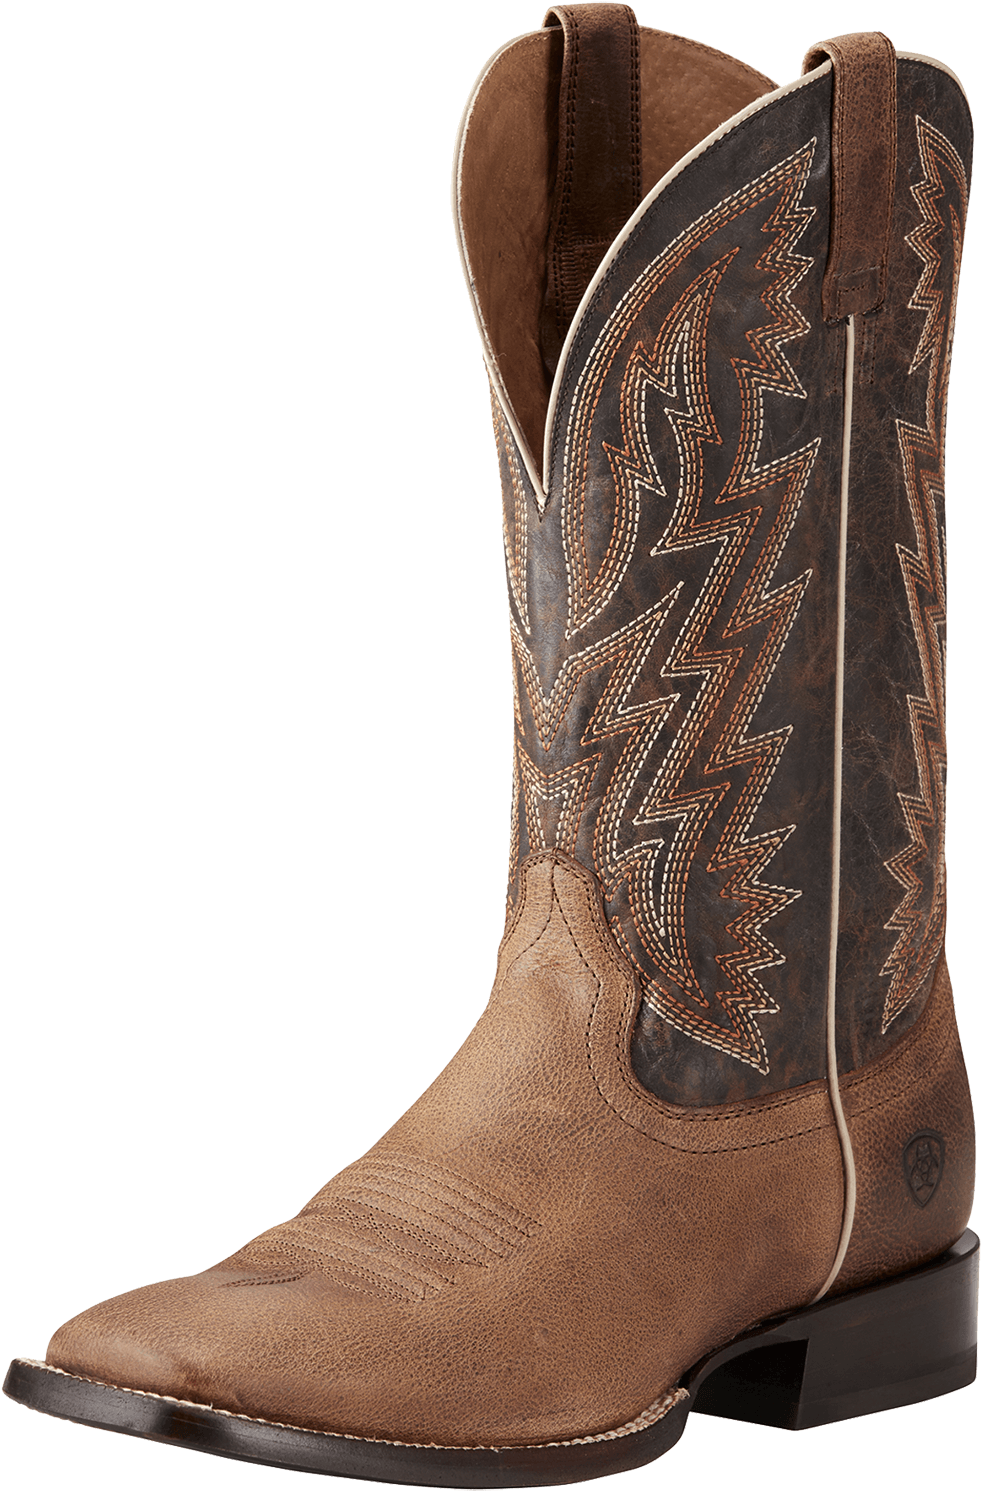 Cowboy Boots And Hat Png Cowboy Boots Png 163478 Ariat Cowboy Boots Square Toe 4328448 Vippng 3,000+ vectors, stock photos & psd files. vippng